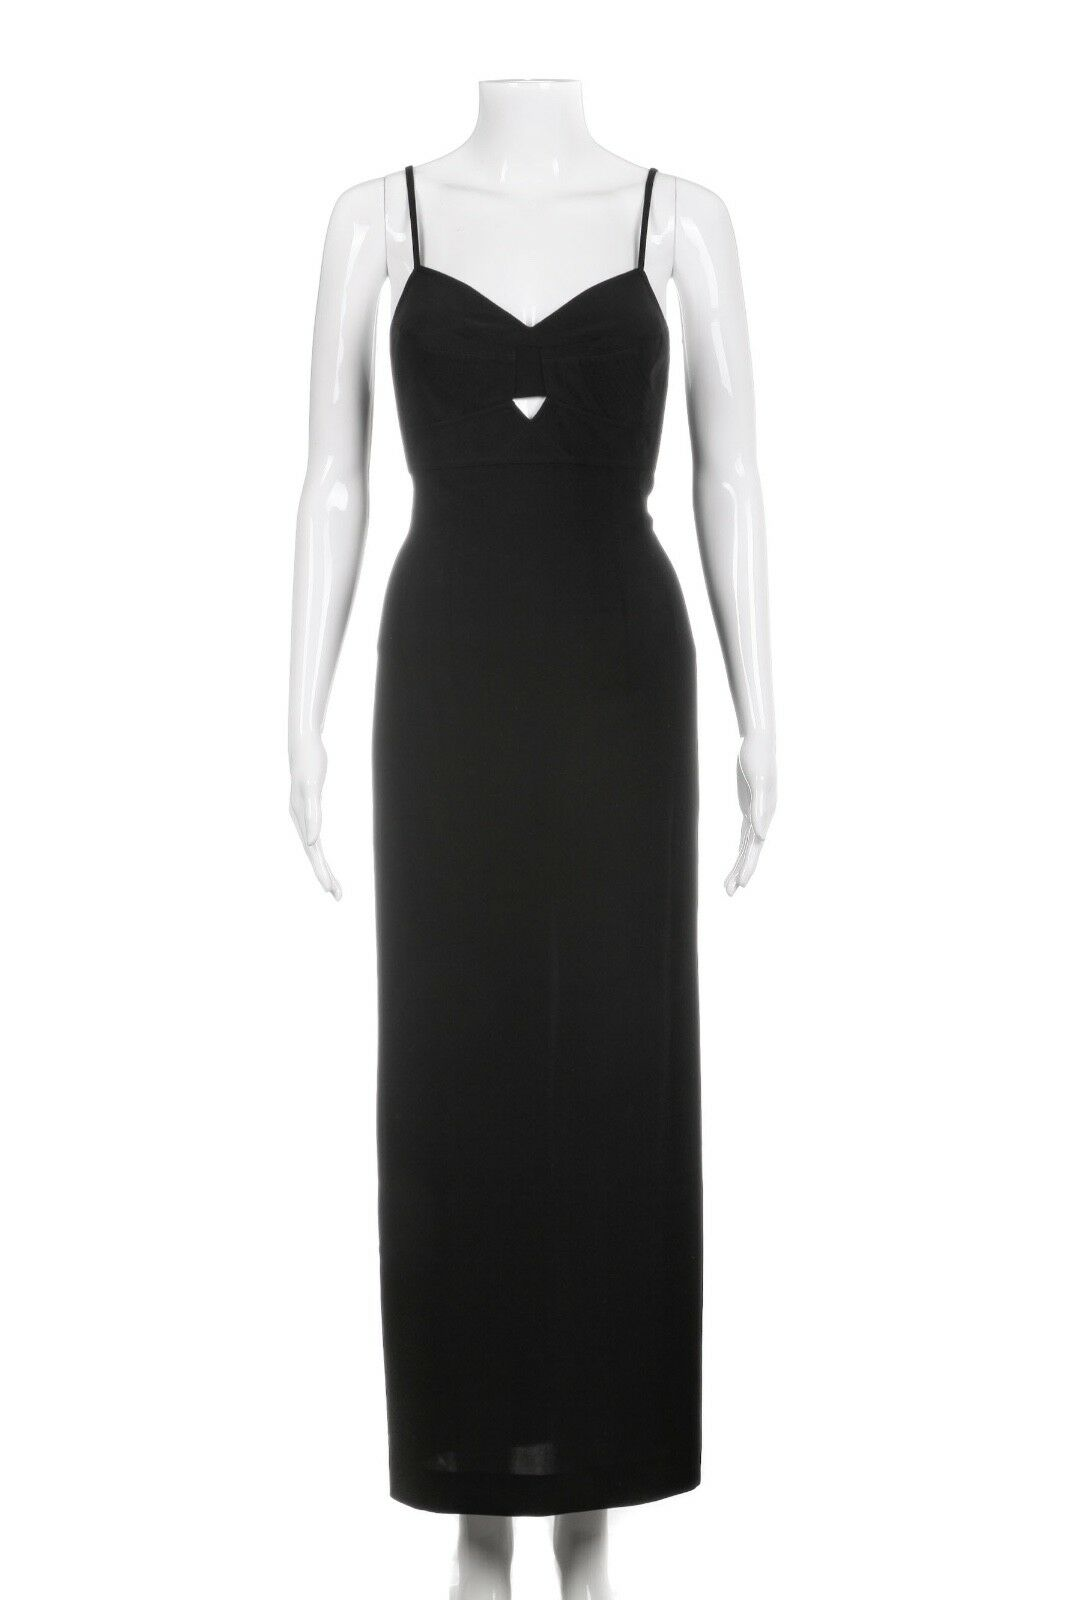 DOLCE & GABBANA black Midi Cut Out Cocktail Dress Size 6